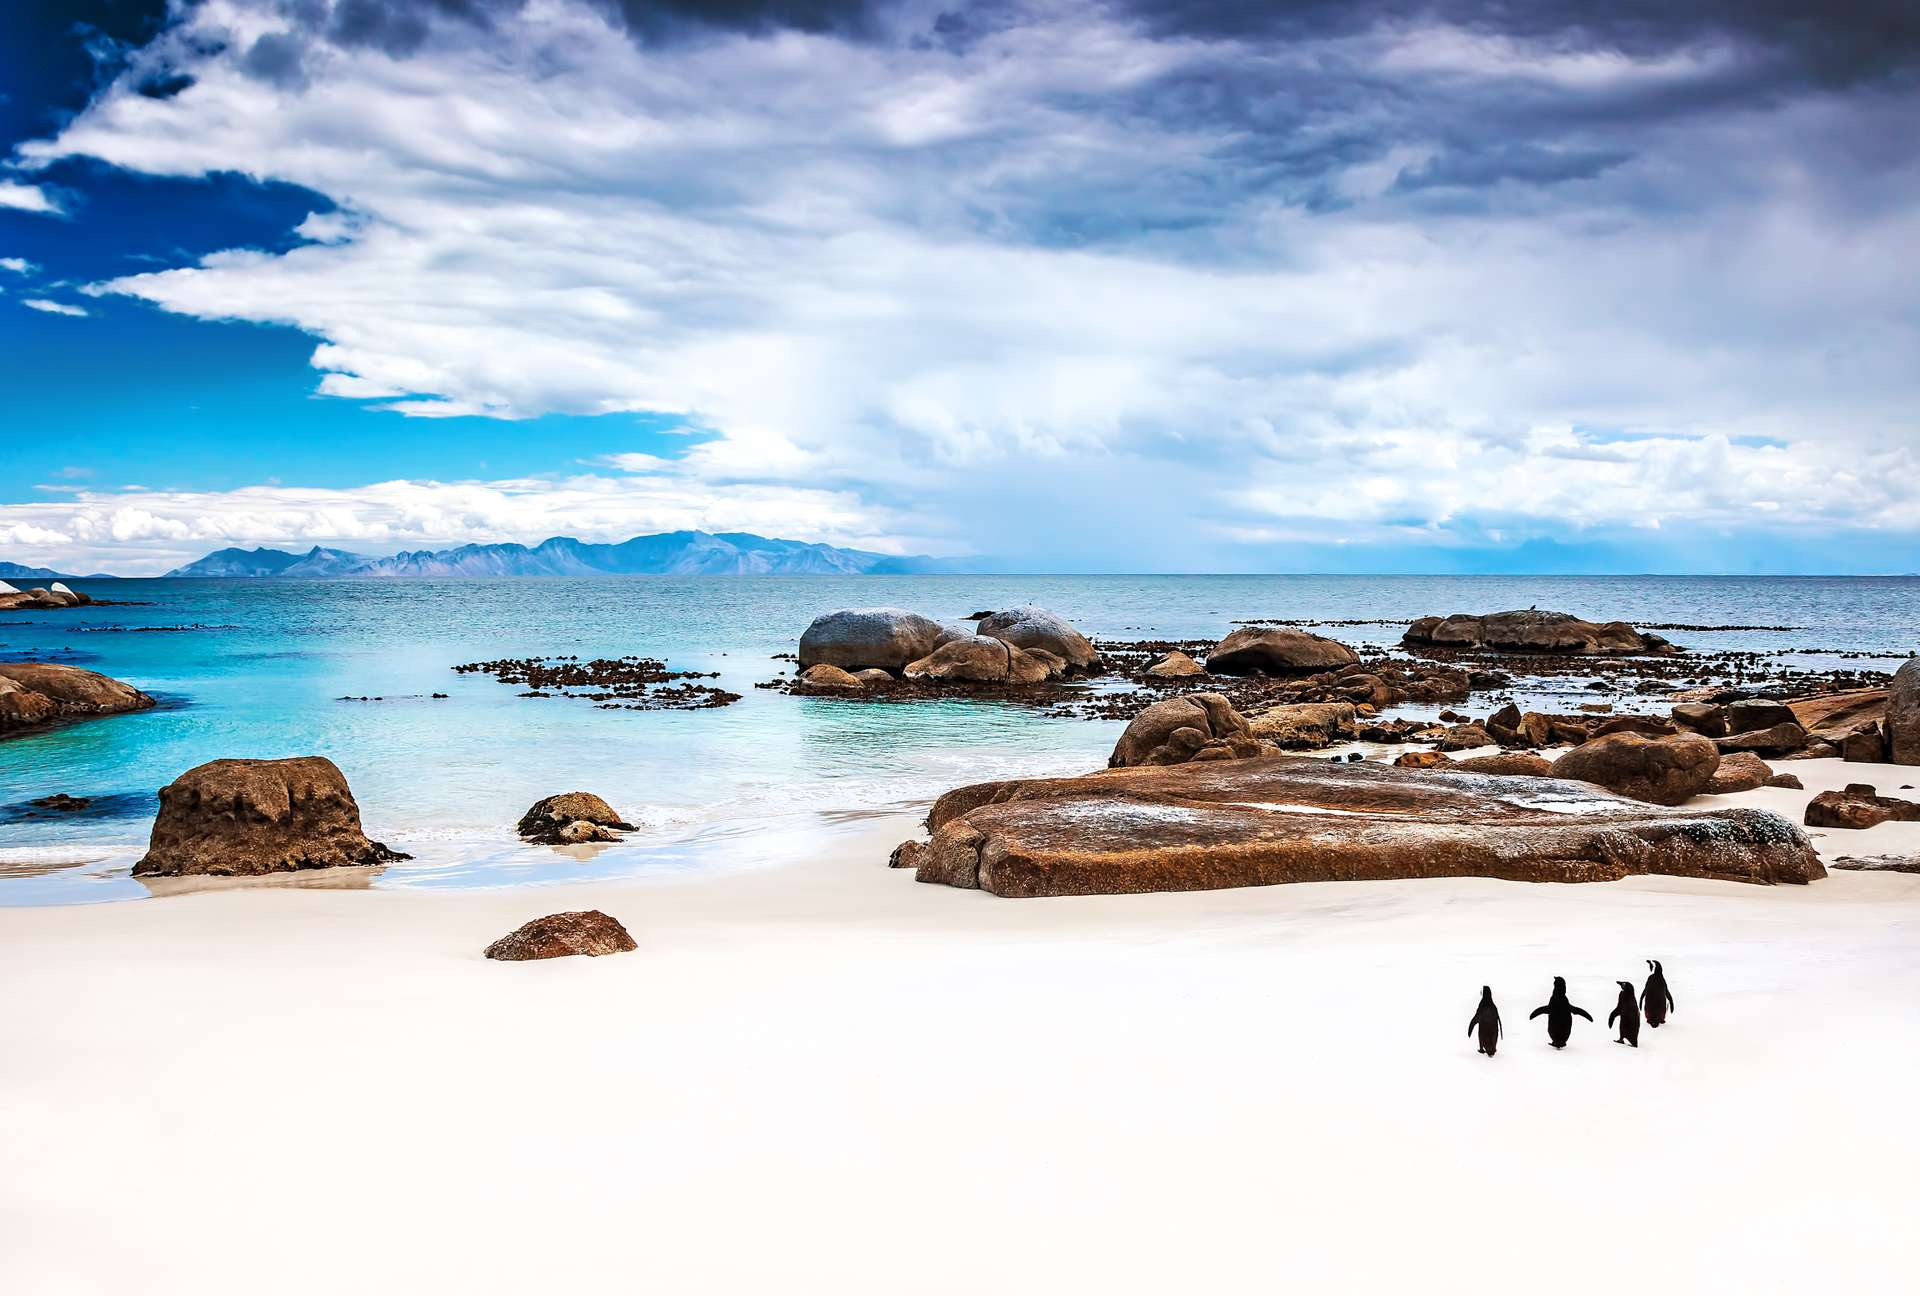 Zuid Afrika Simons Town Pinguins op strand